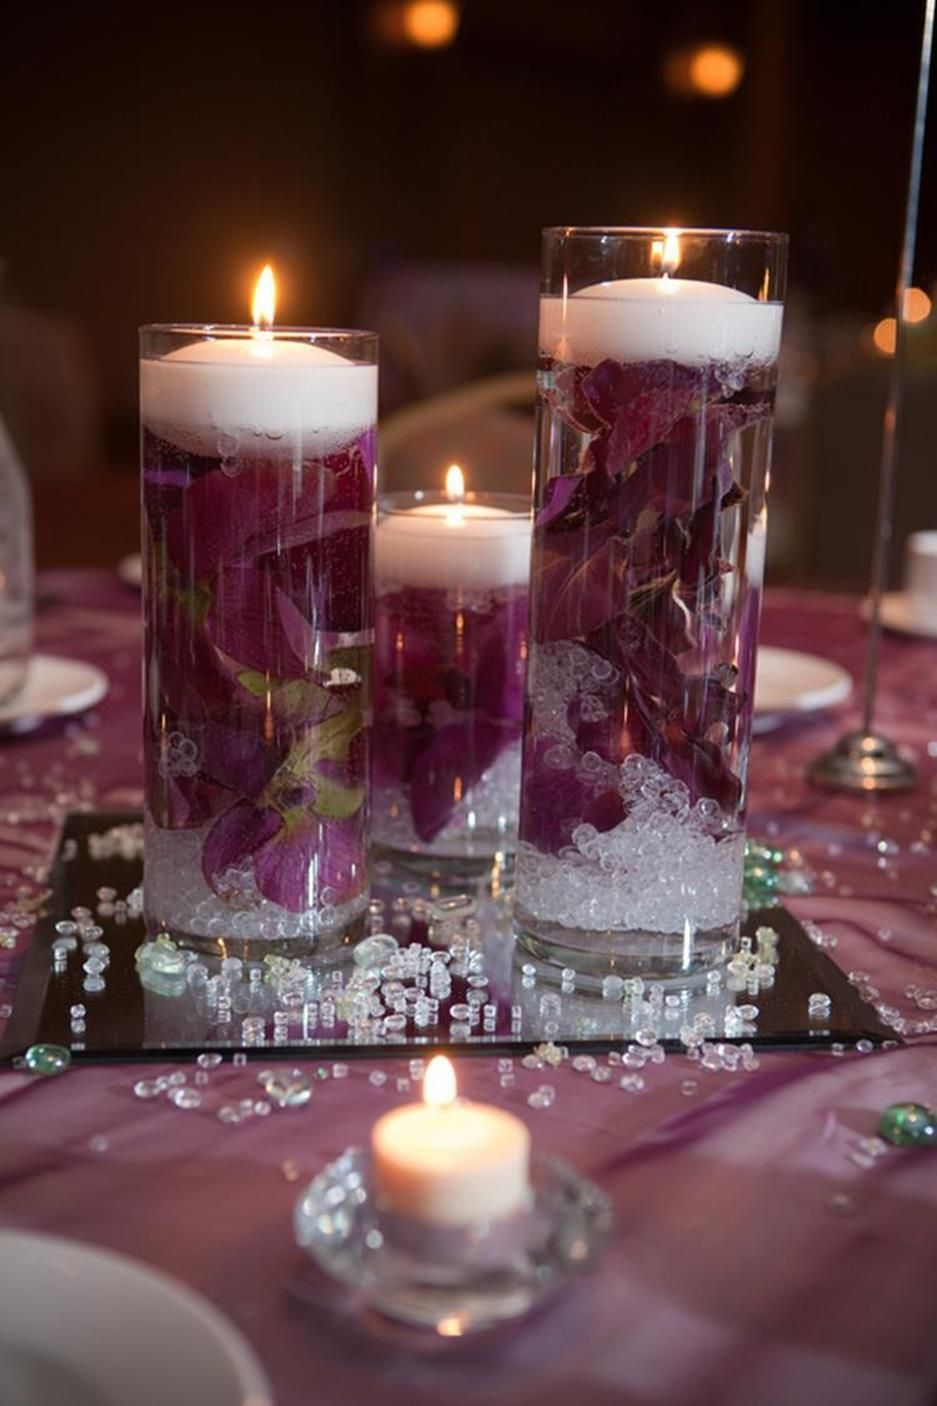 inexpensive wedding centerpiece ideas 10 in 2019 party ideas rh in pinterest com